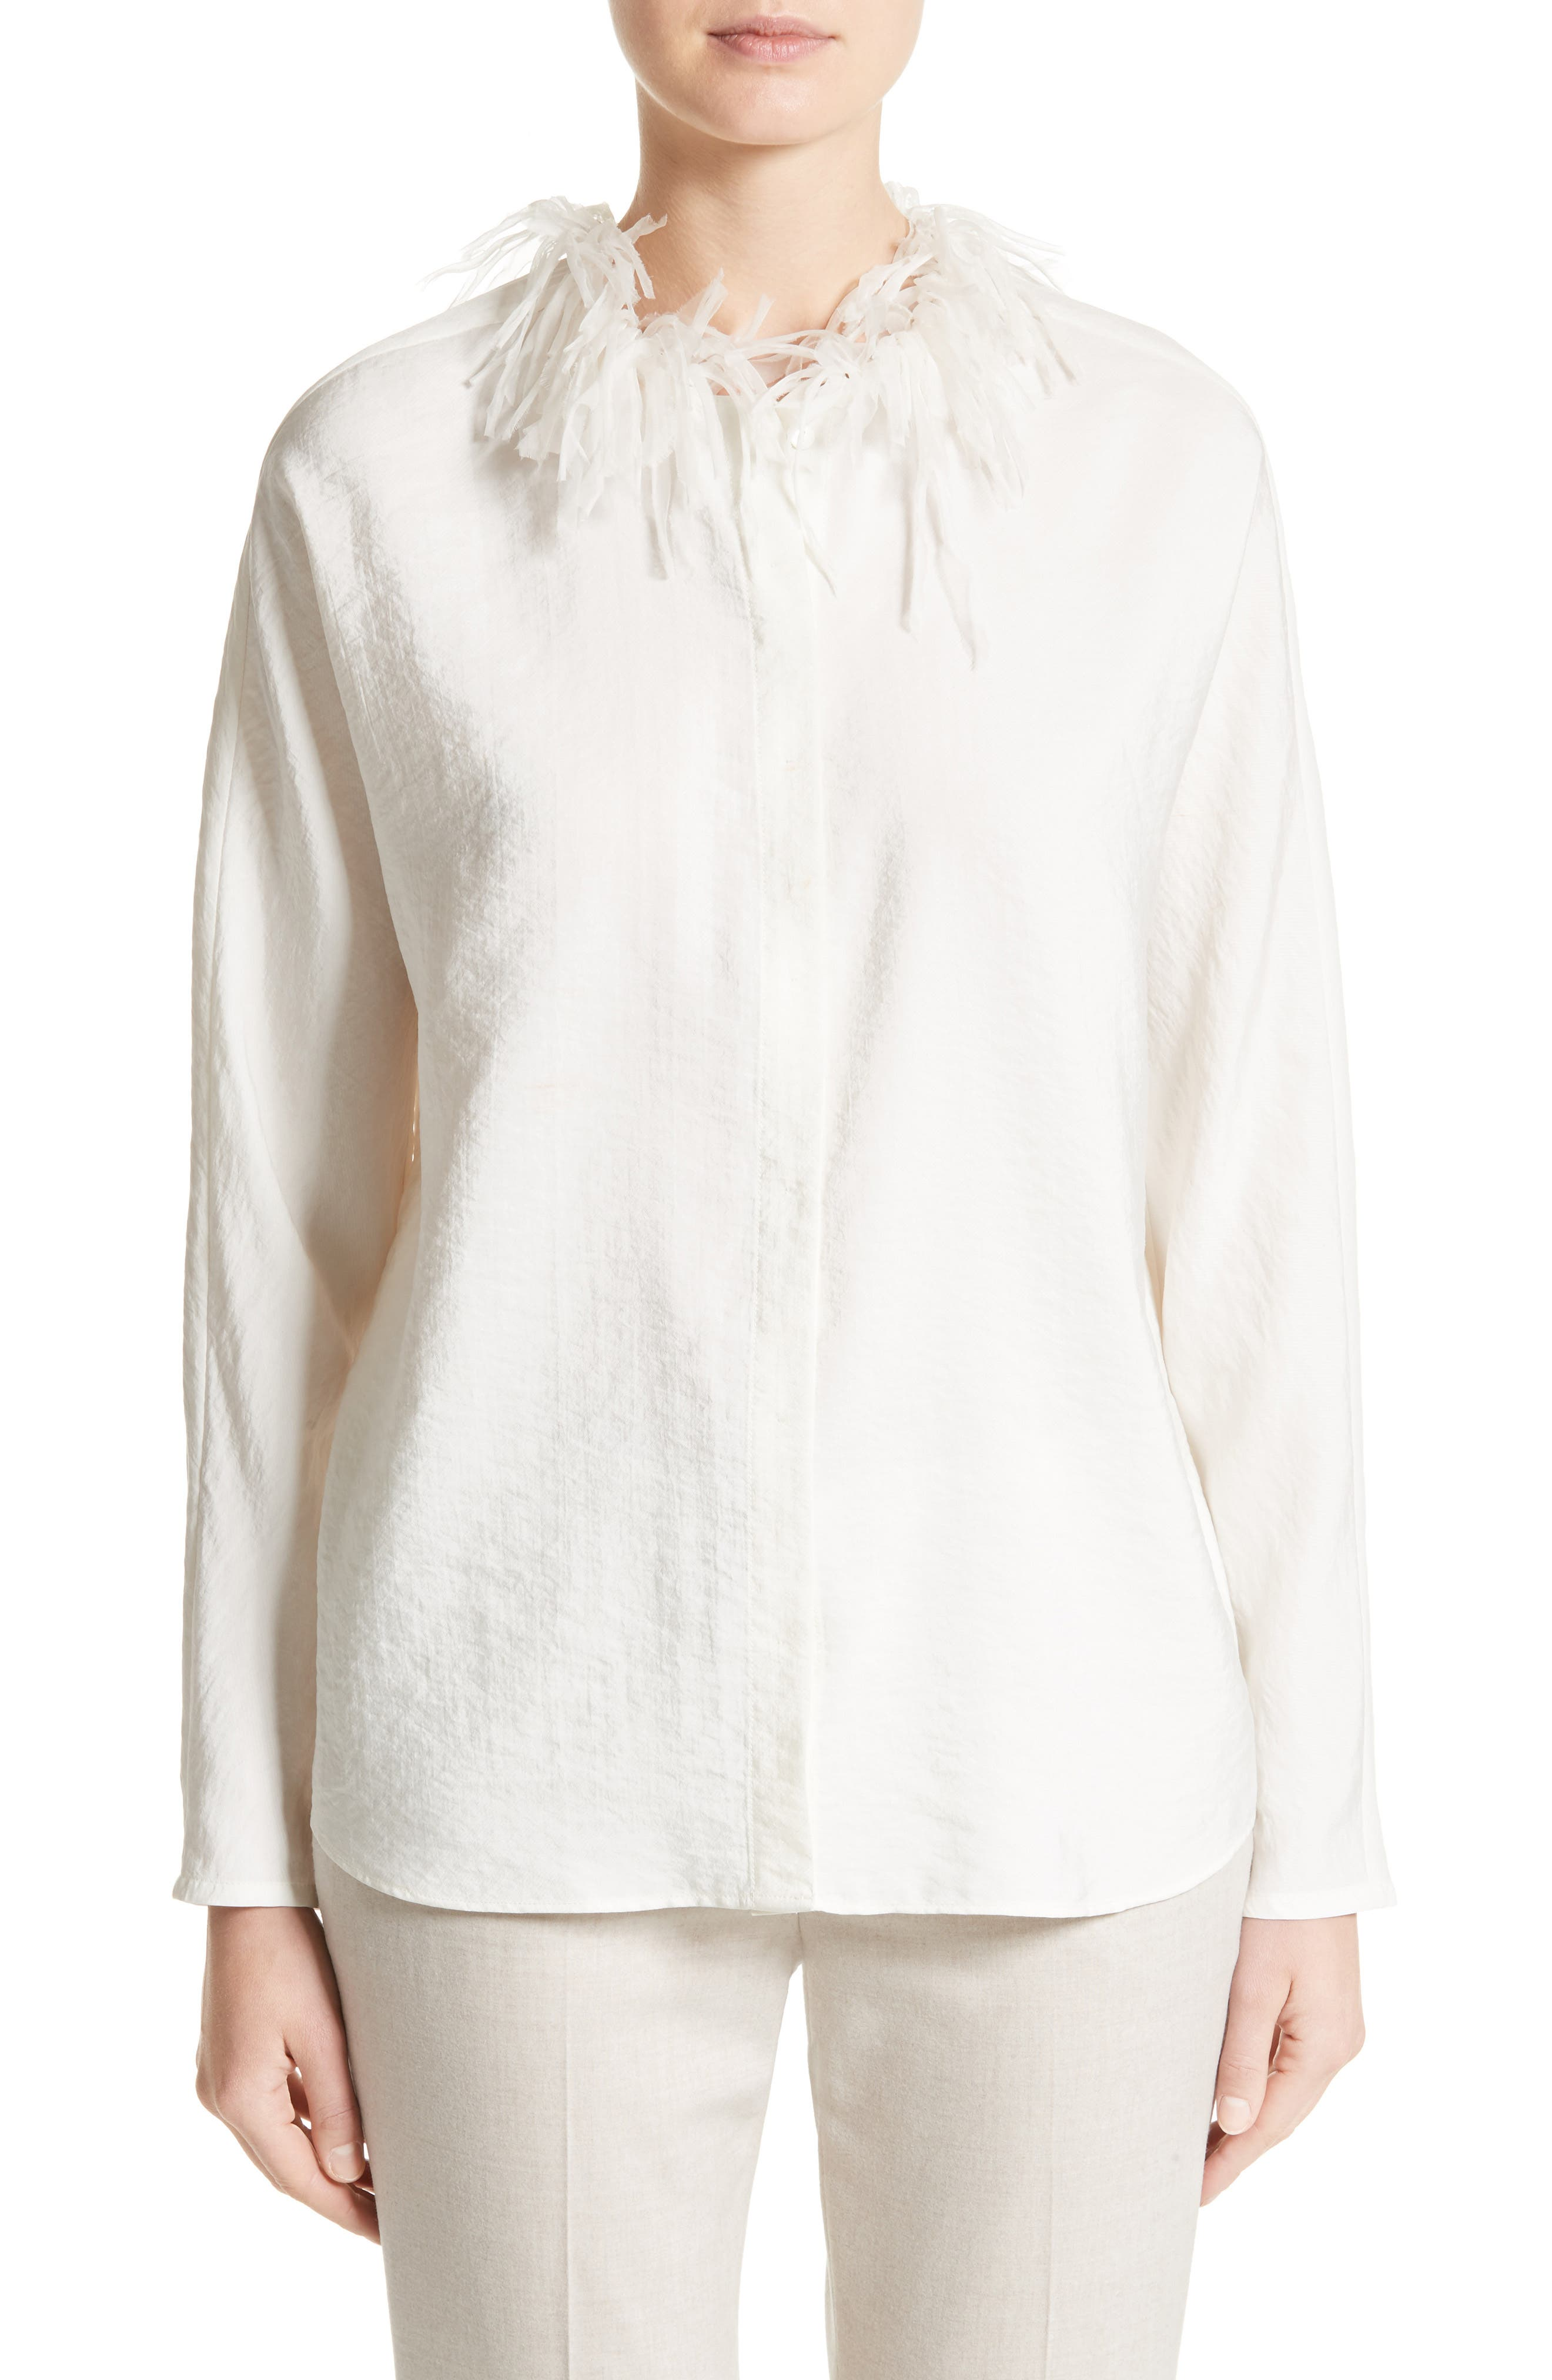 Silk Blend Twill Blouse with Organza Collar,                             Main thumbnail 1, color,                             101